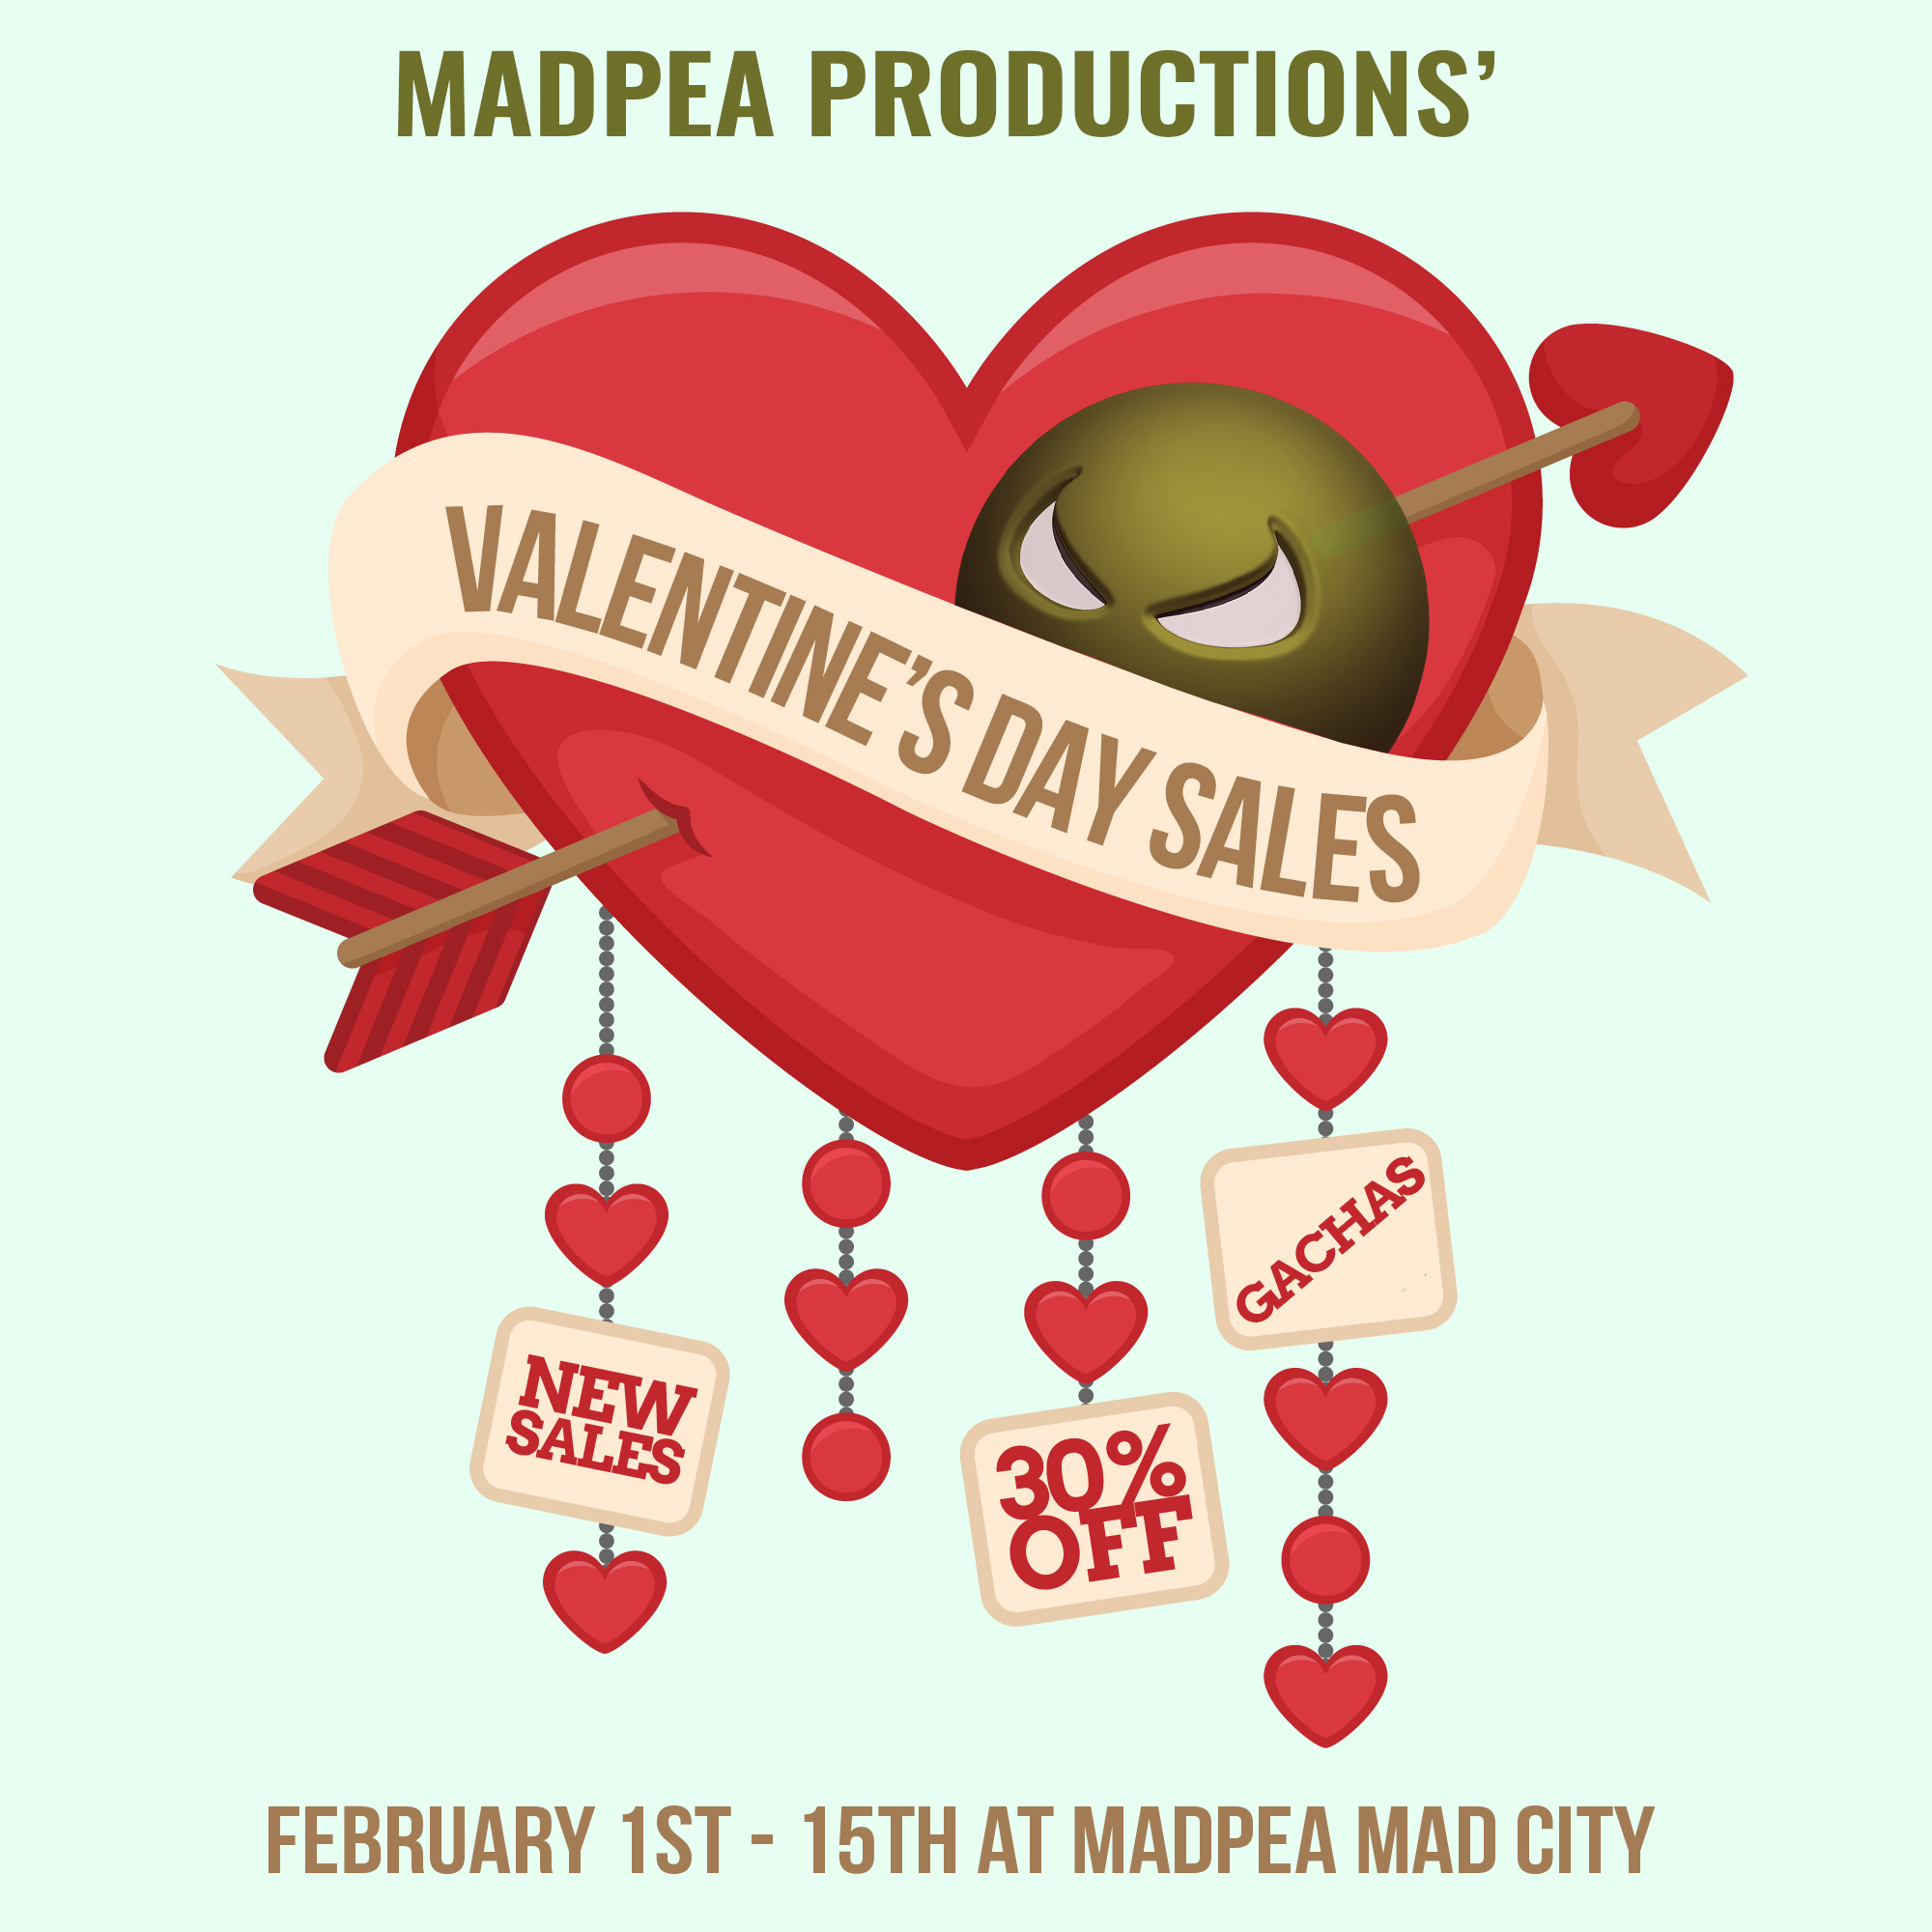 Love and Peas – St Valentine's Day is coming!